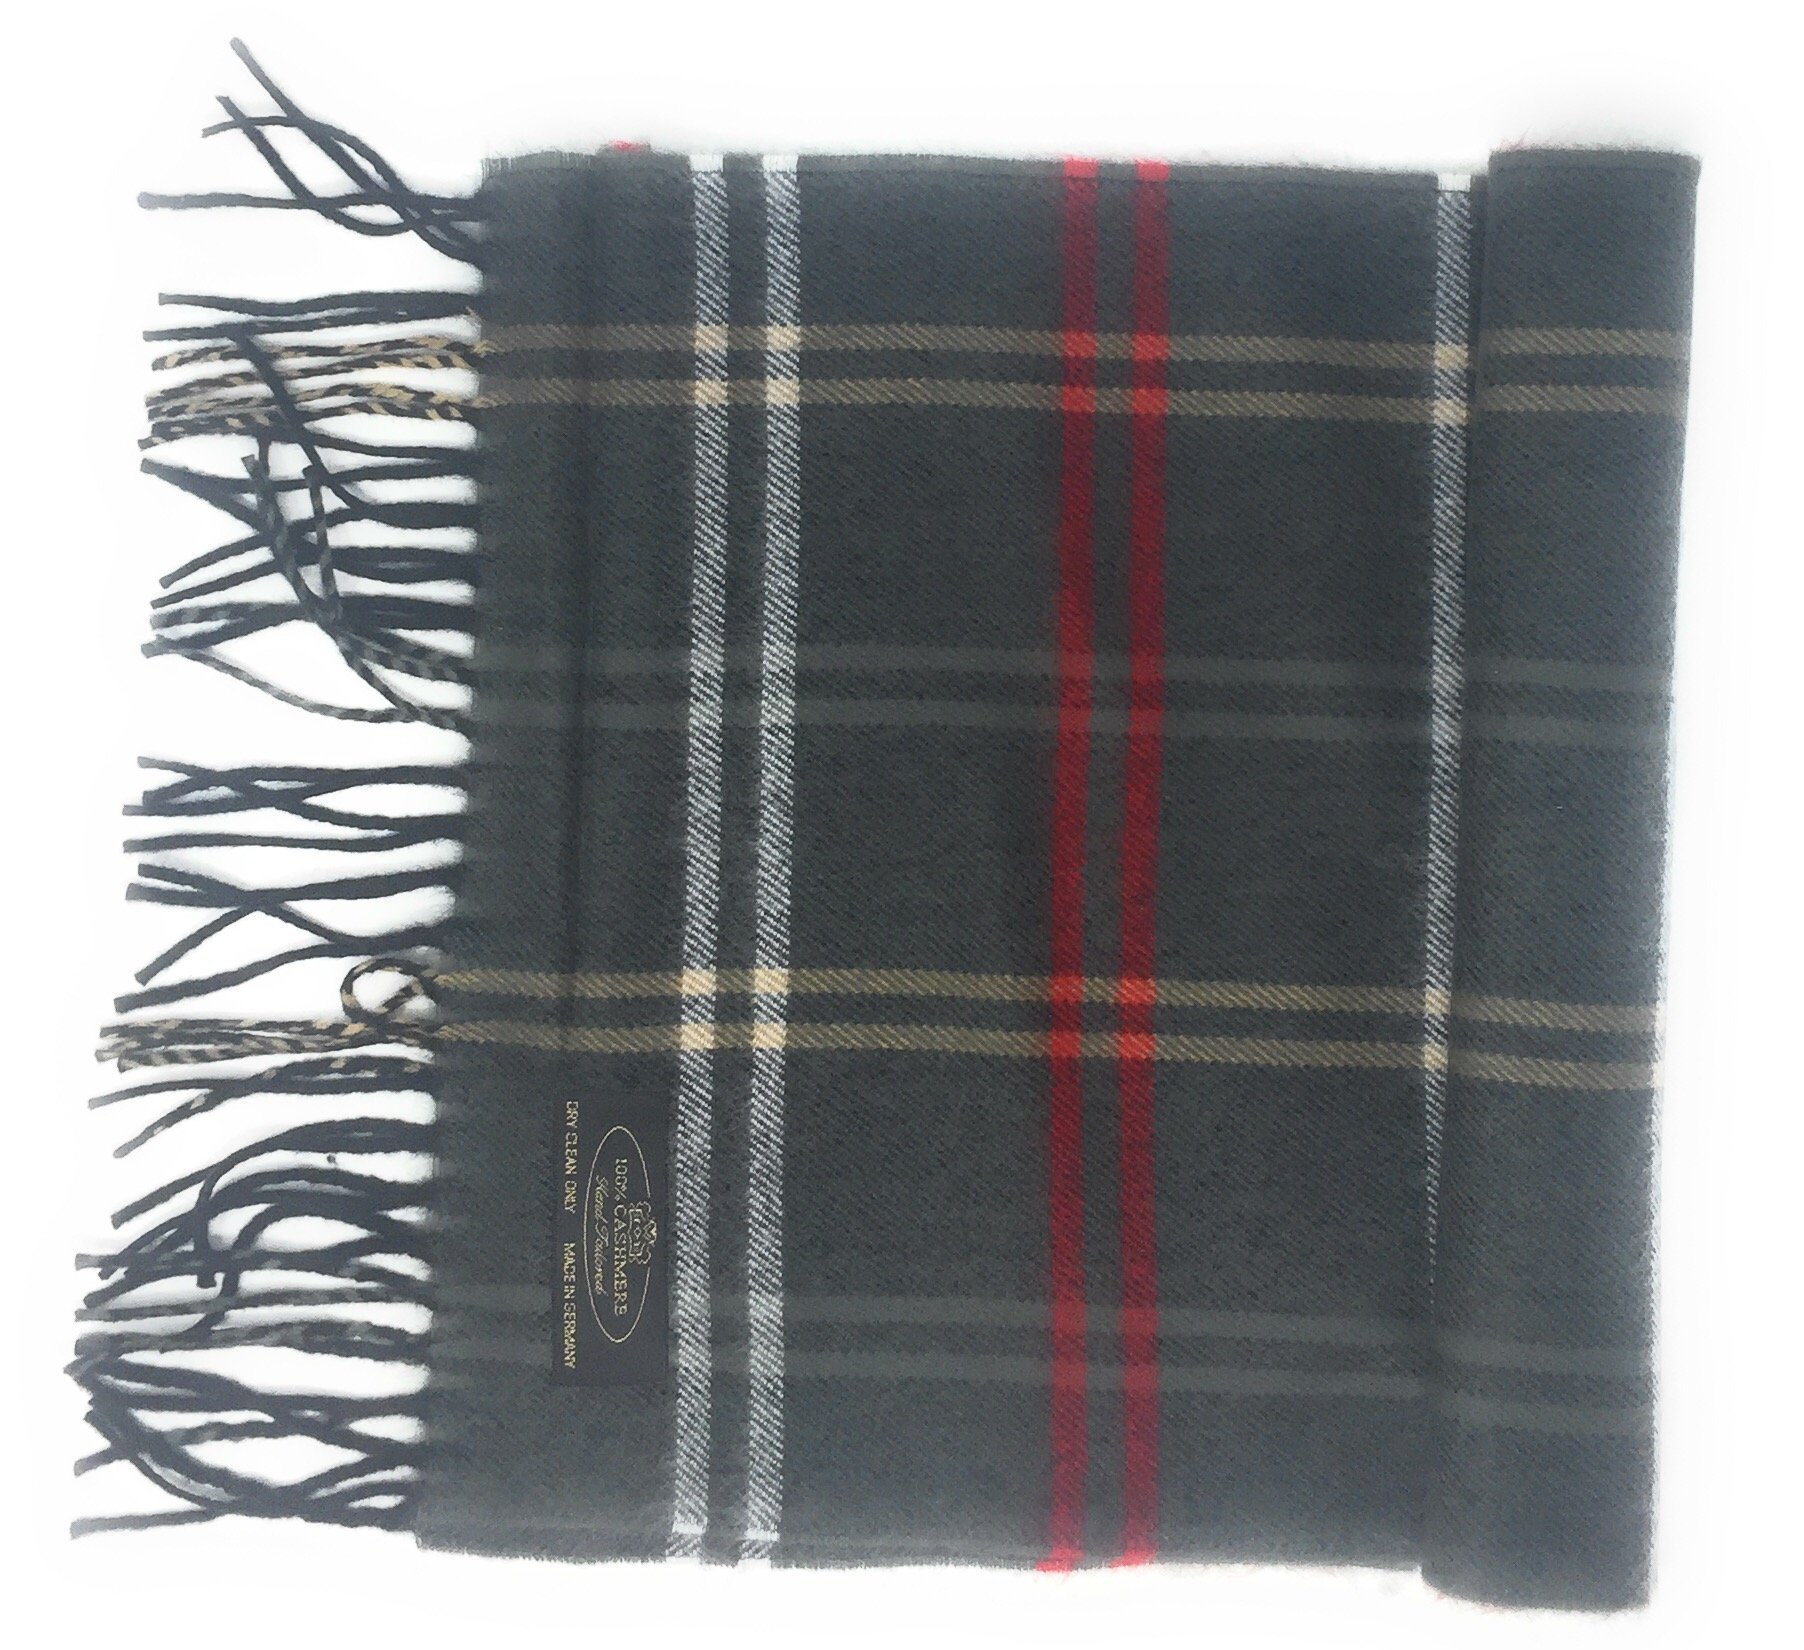 Annys 100% Cashmere Plaid Scarf 12 X 72 with Gift Bag For Men Women (Dark Grey/Red/Cream Plaid)